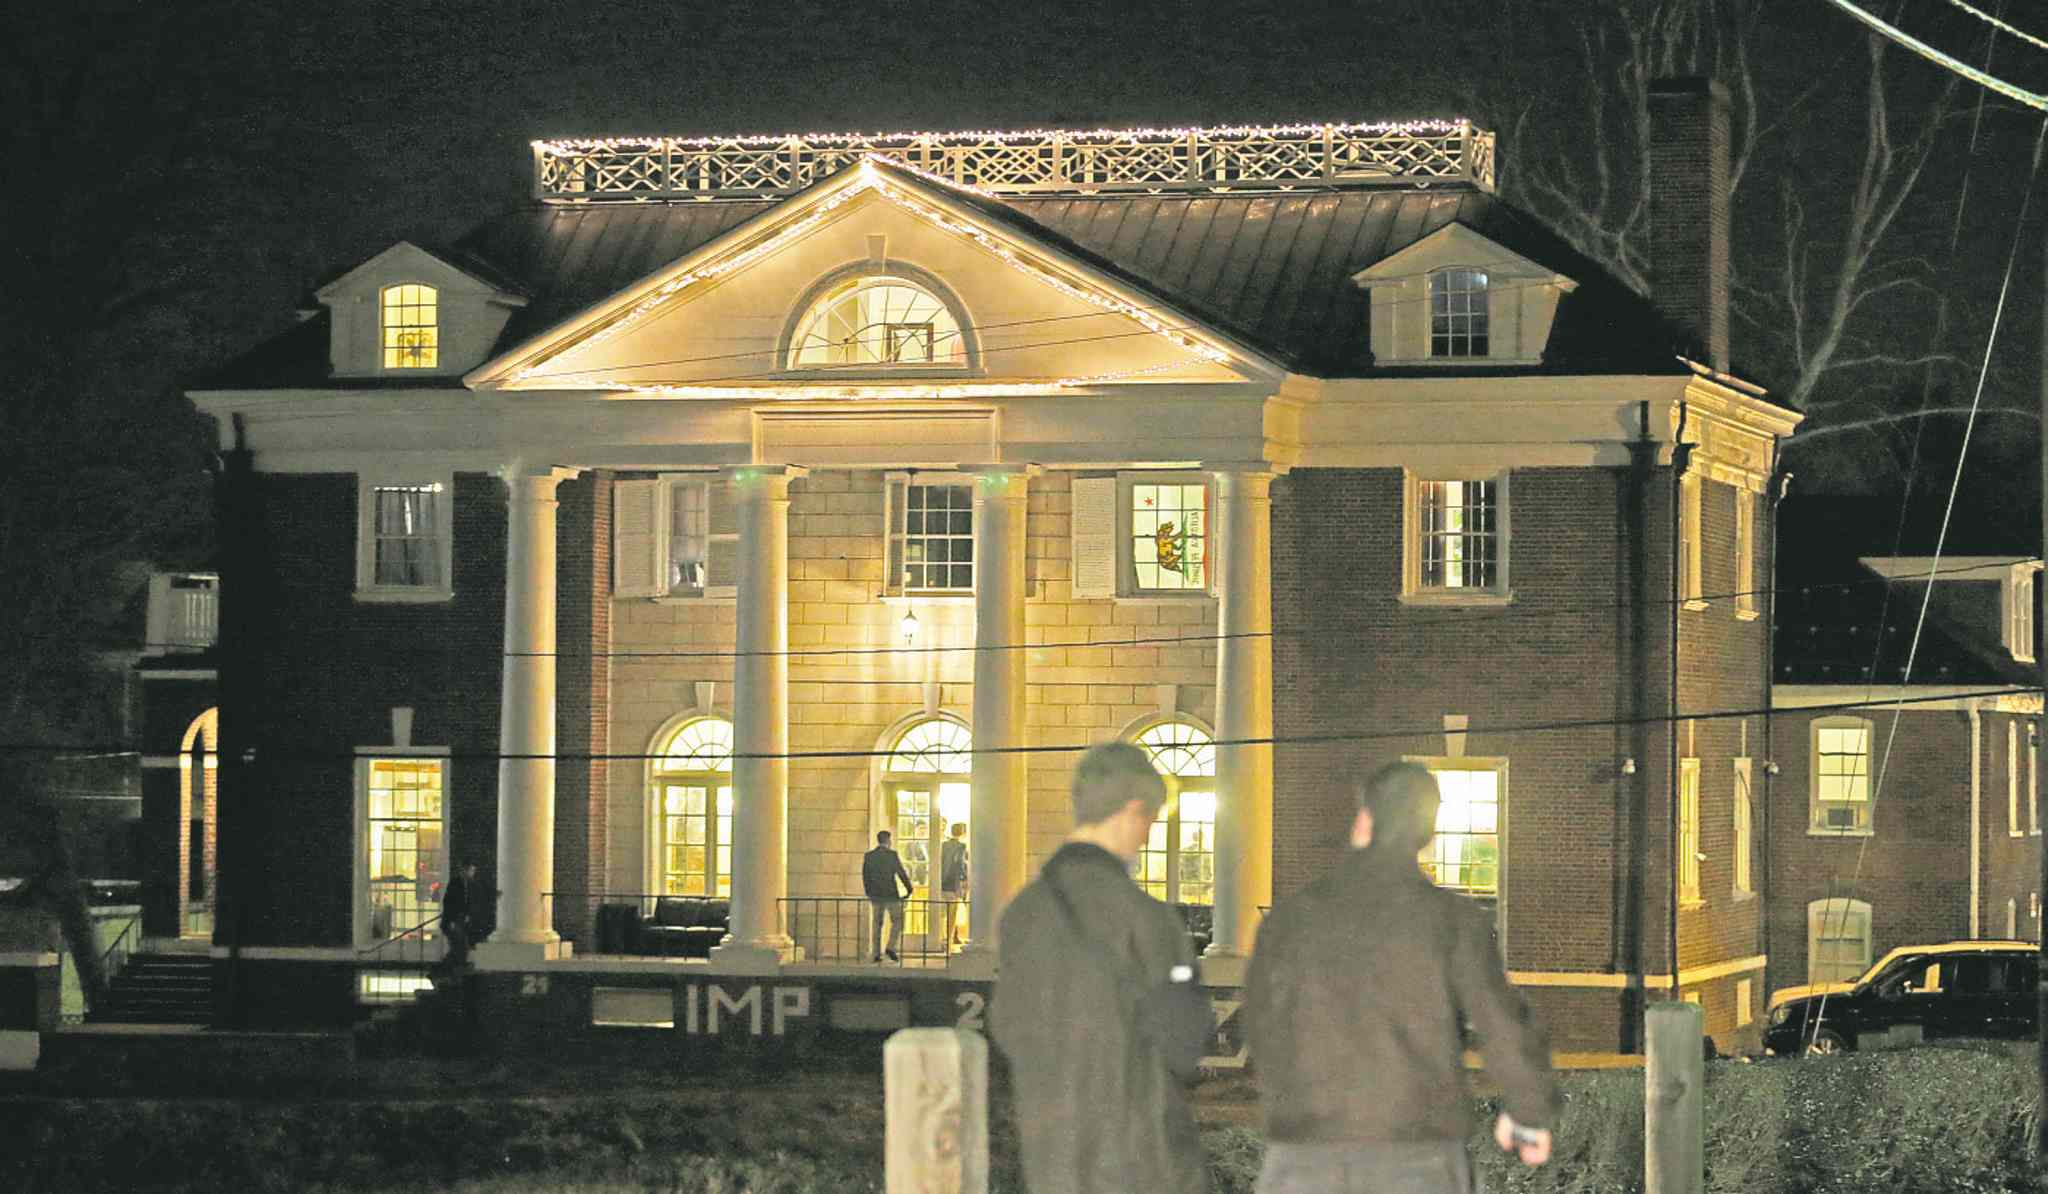 Steve Helber / The Associated Press filesSocial events at the University of Virginia were temporarily suspended.